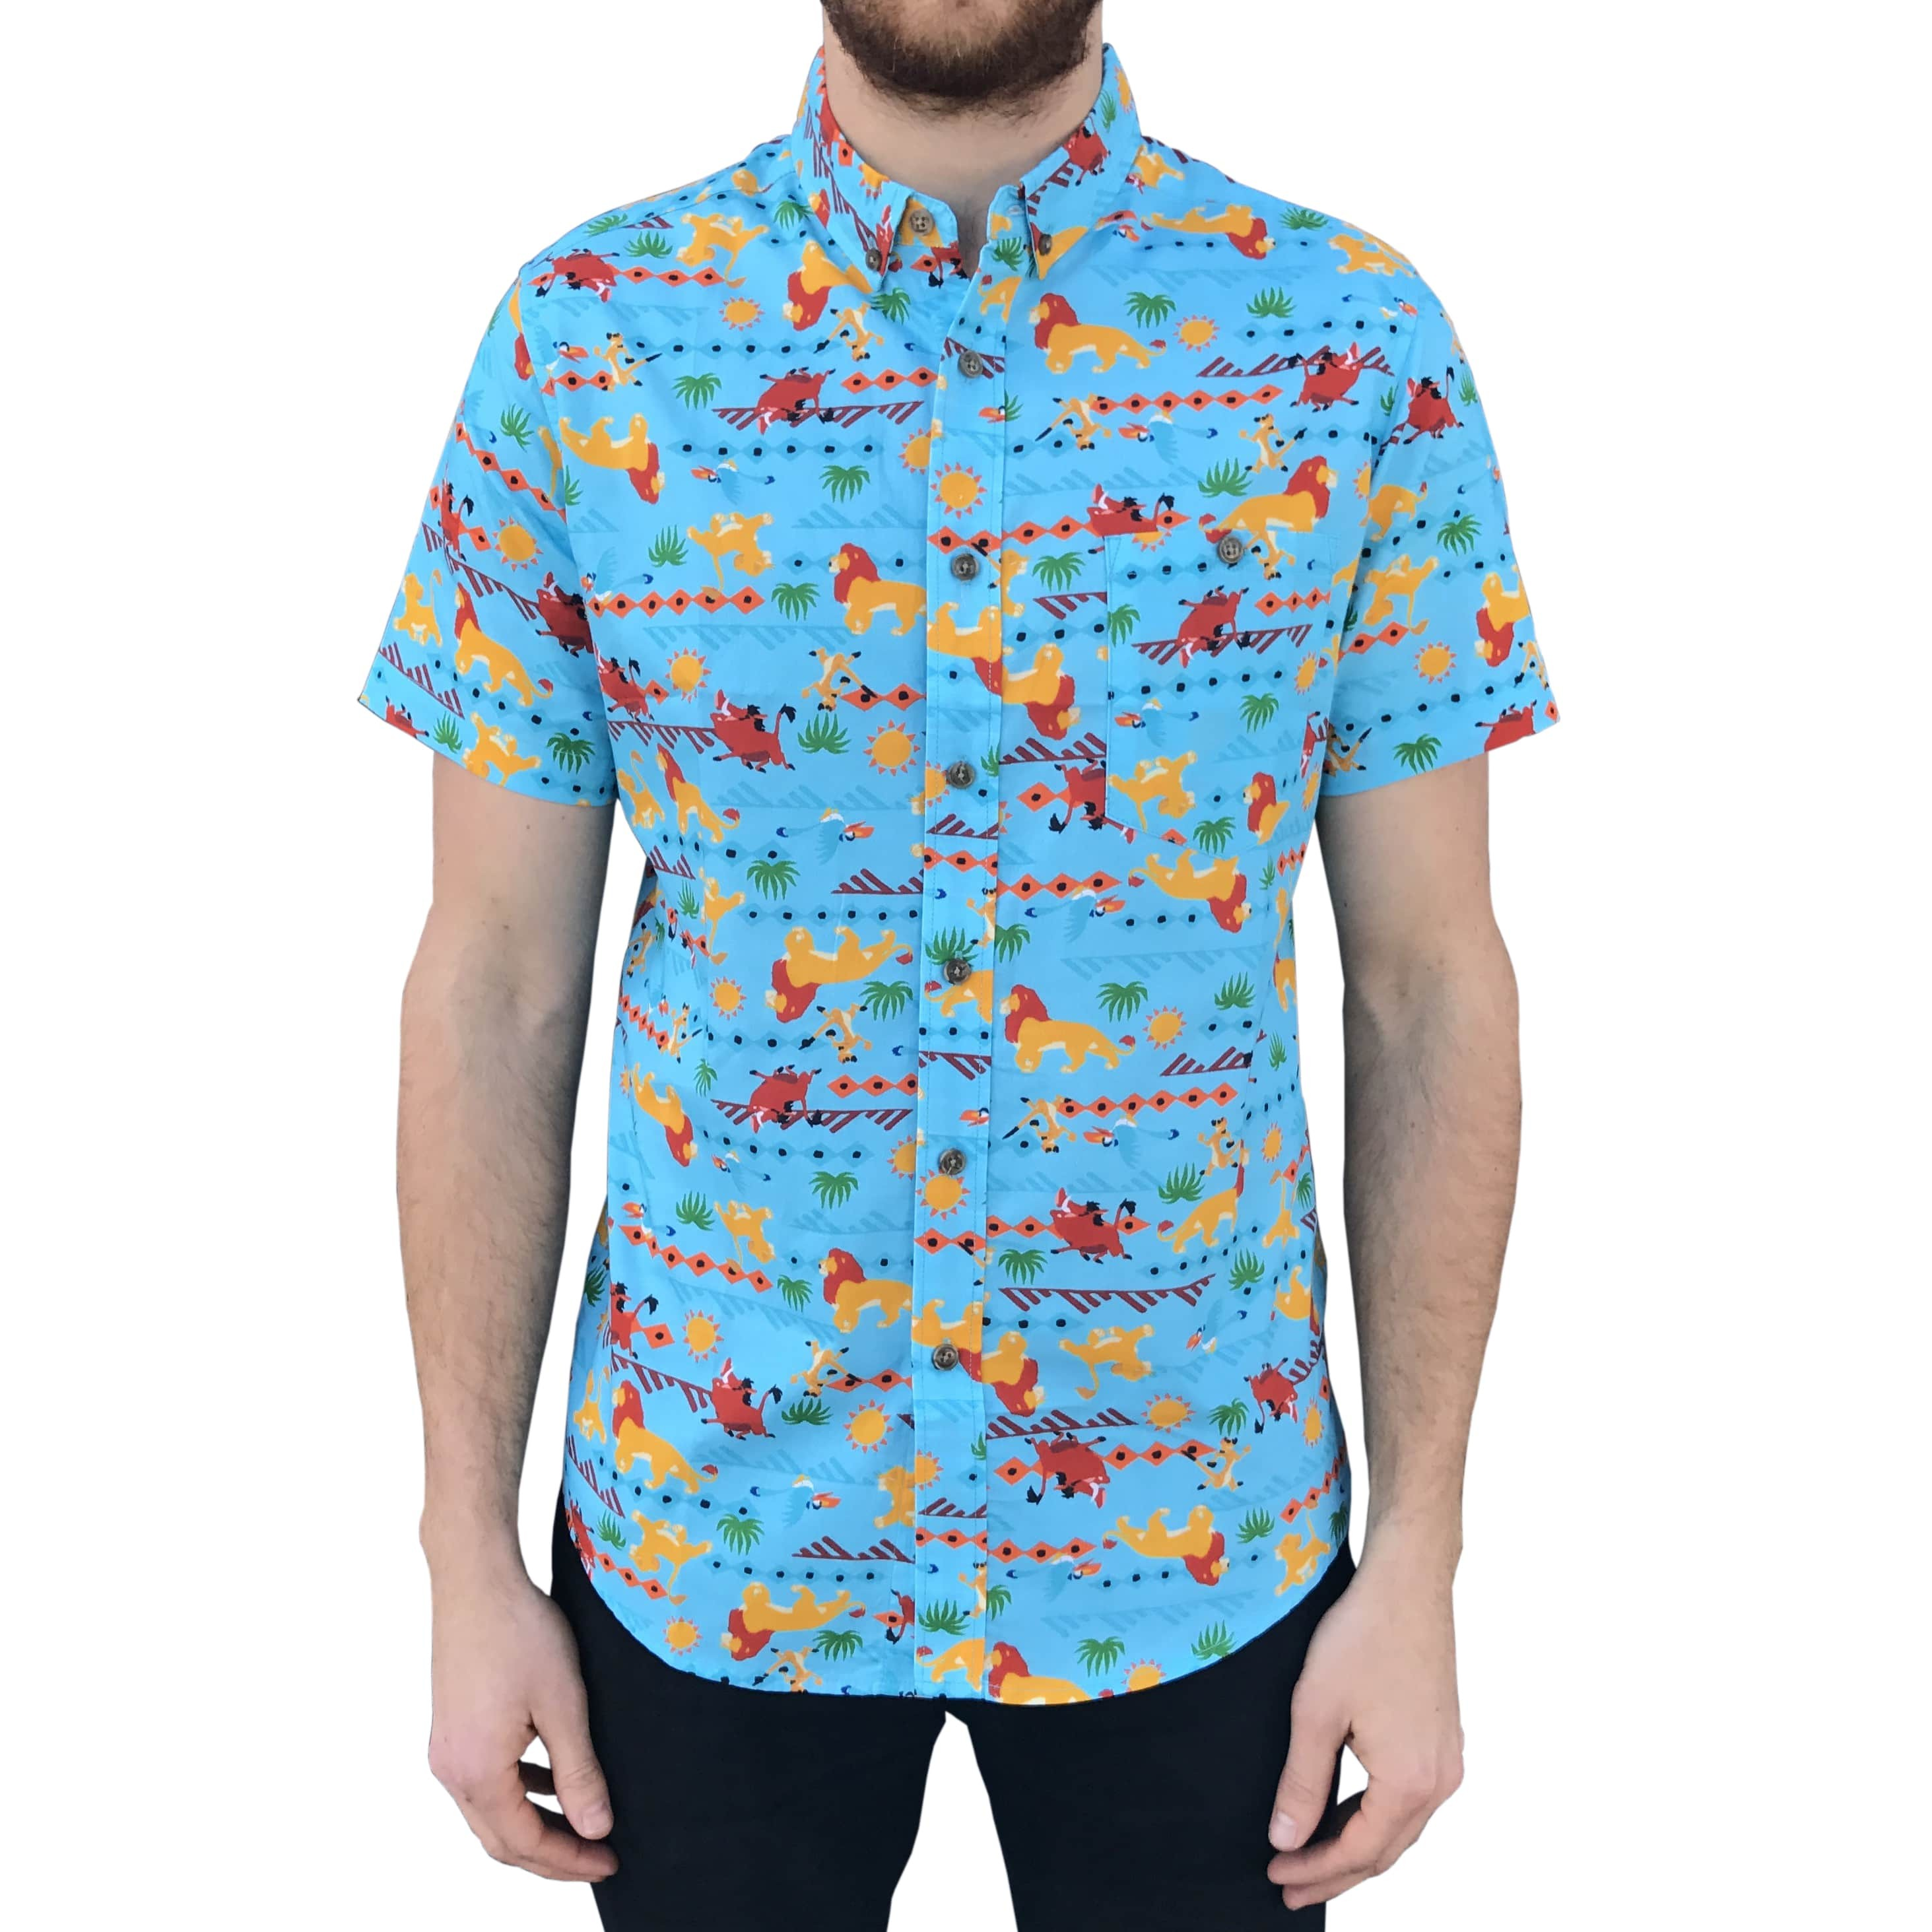 THE KING BUTTON UP PARTY SHIRT